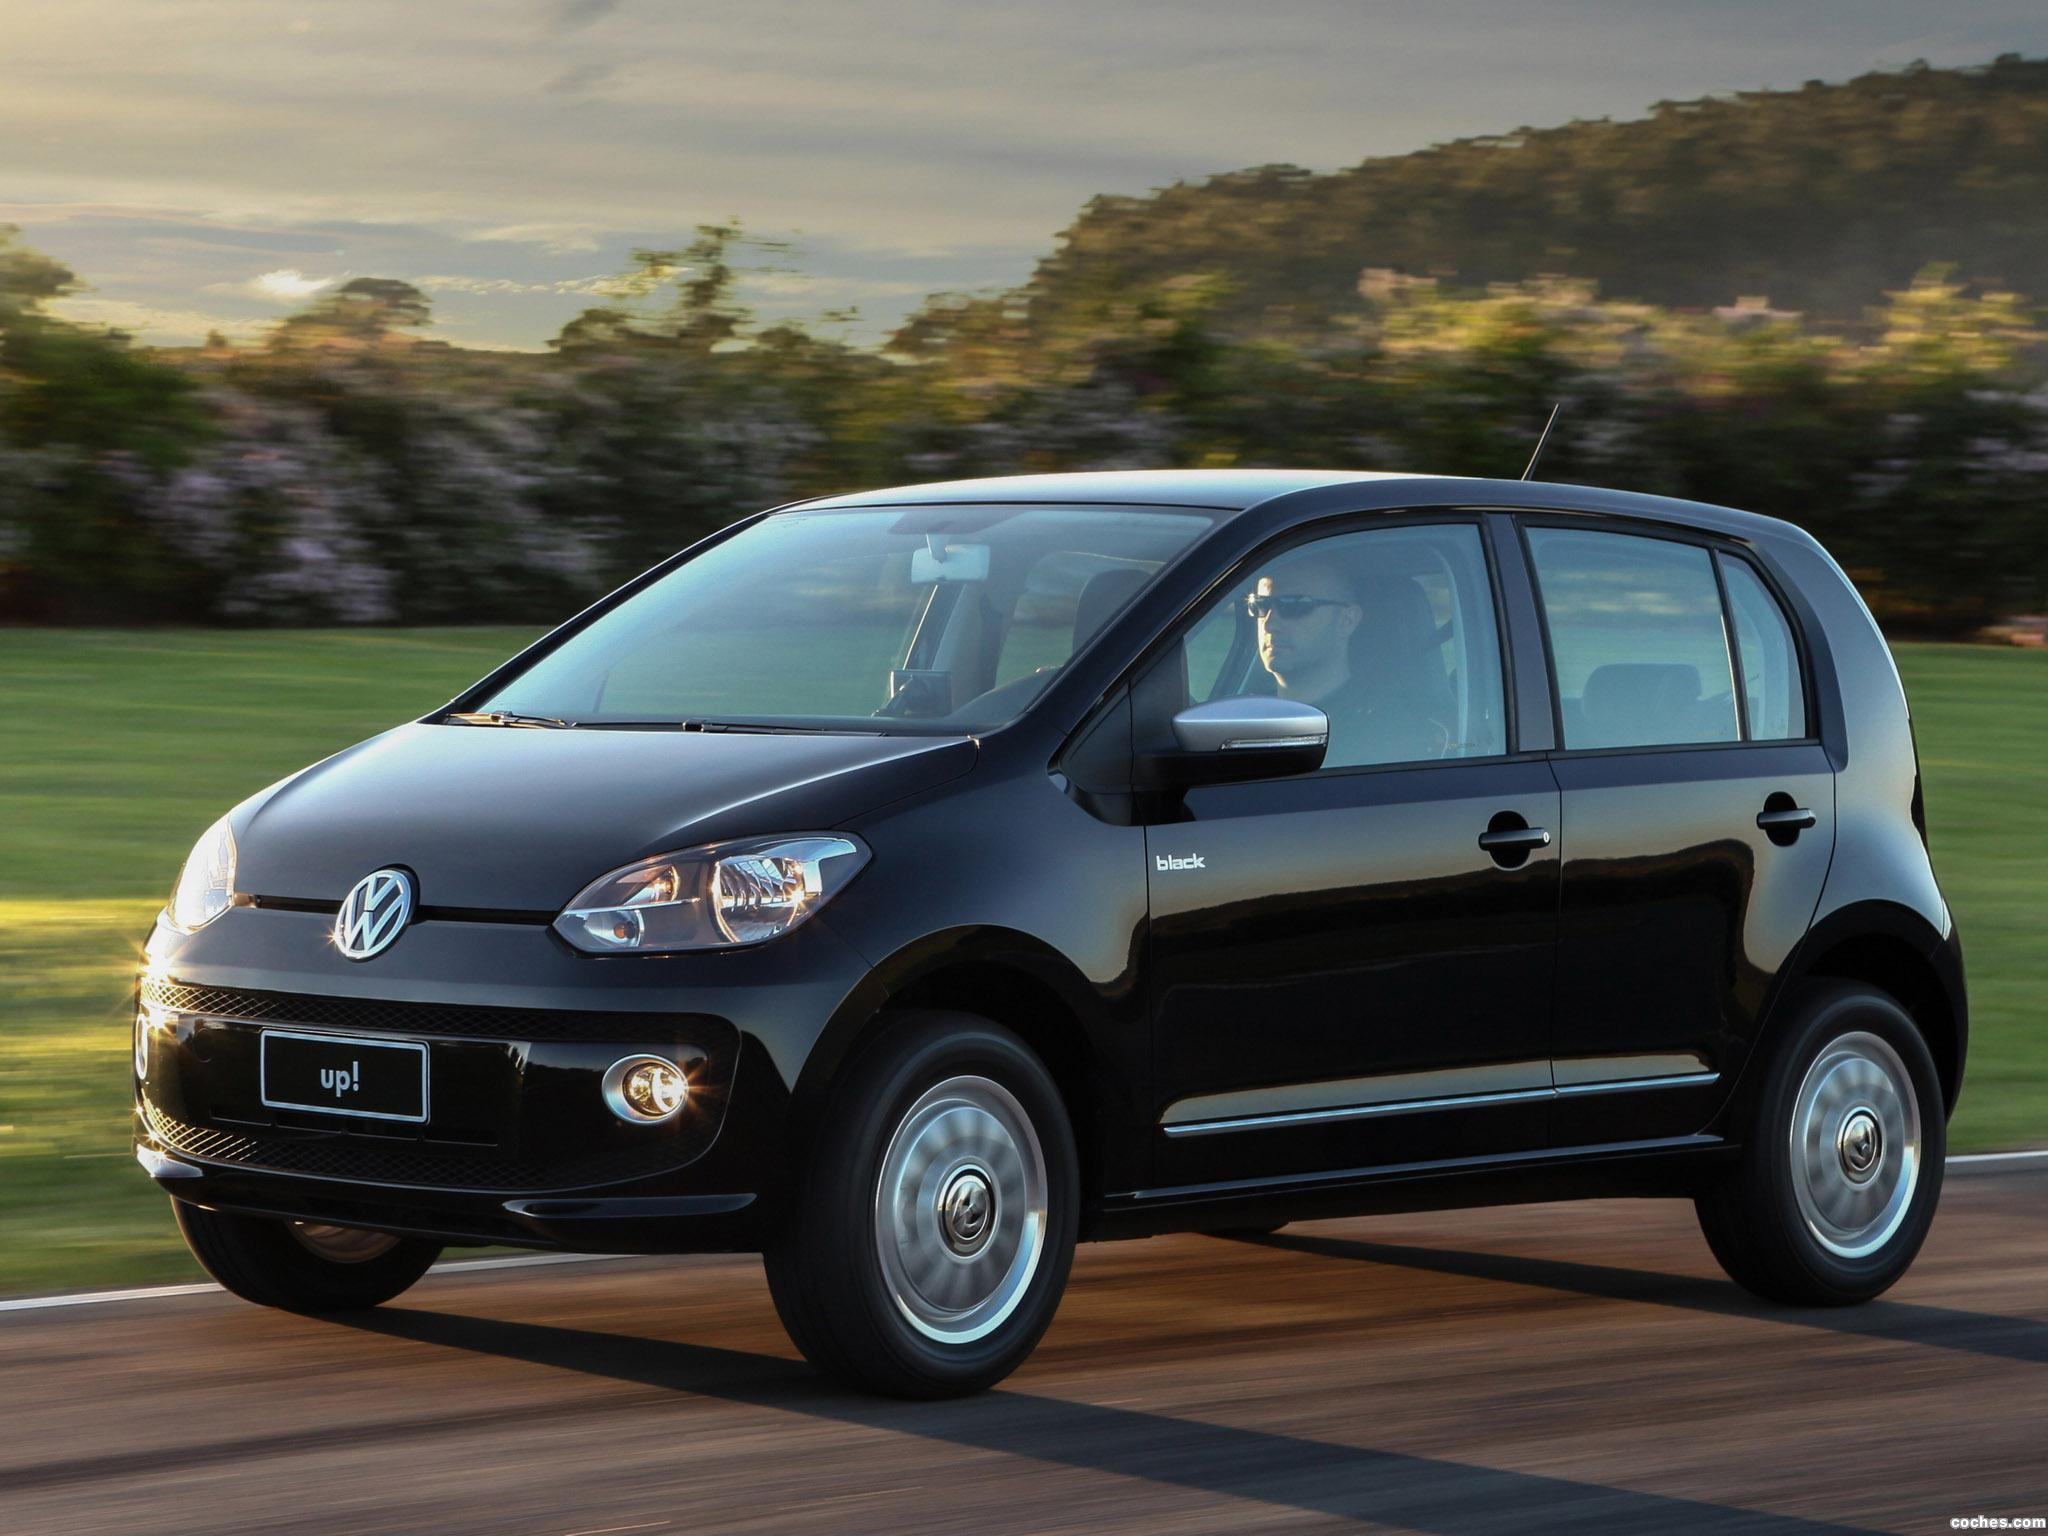 Foto 3 de Volkswagen Up! Black Brasil 2014